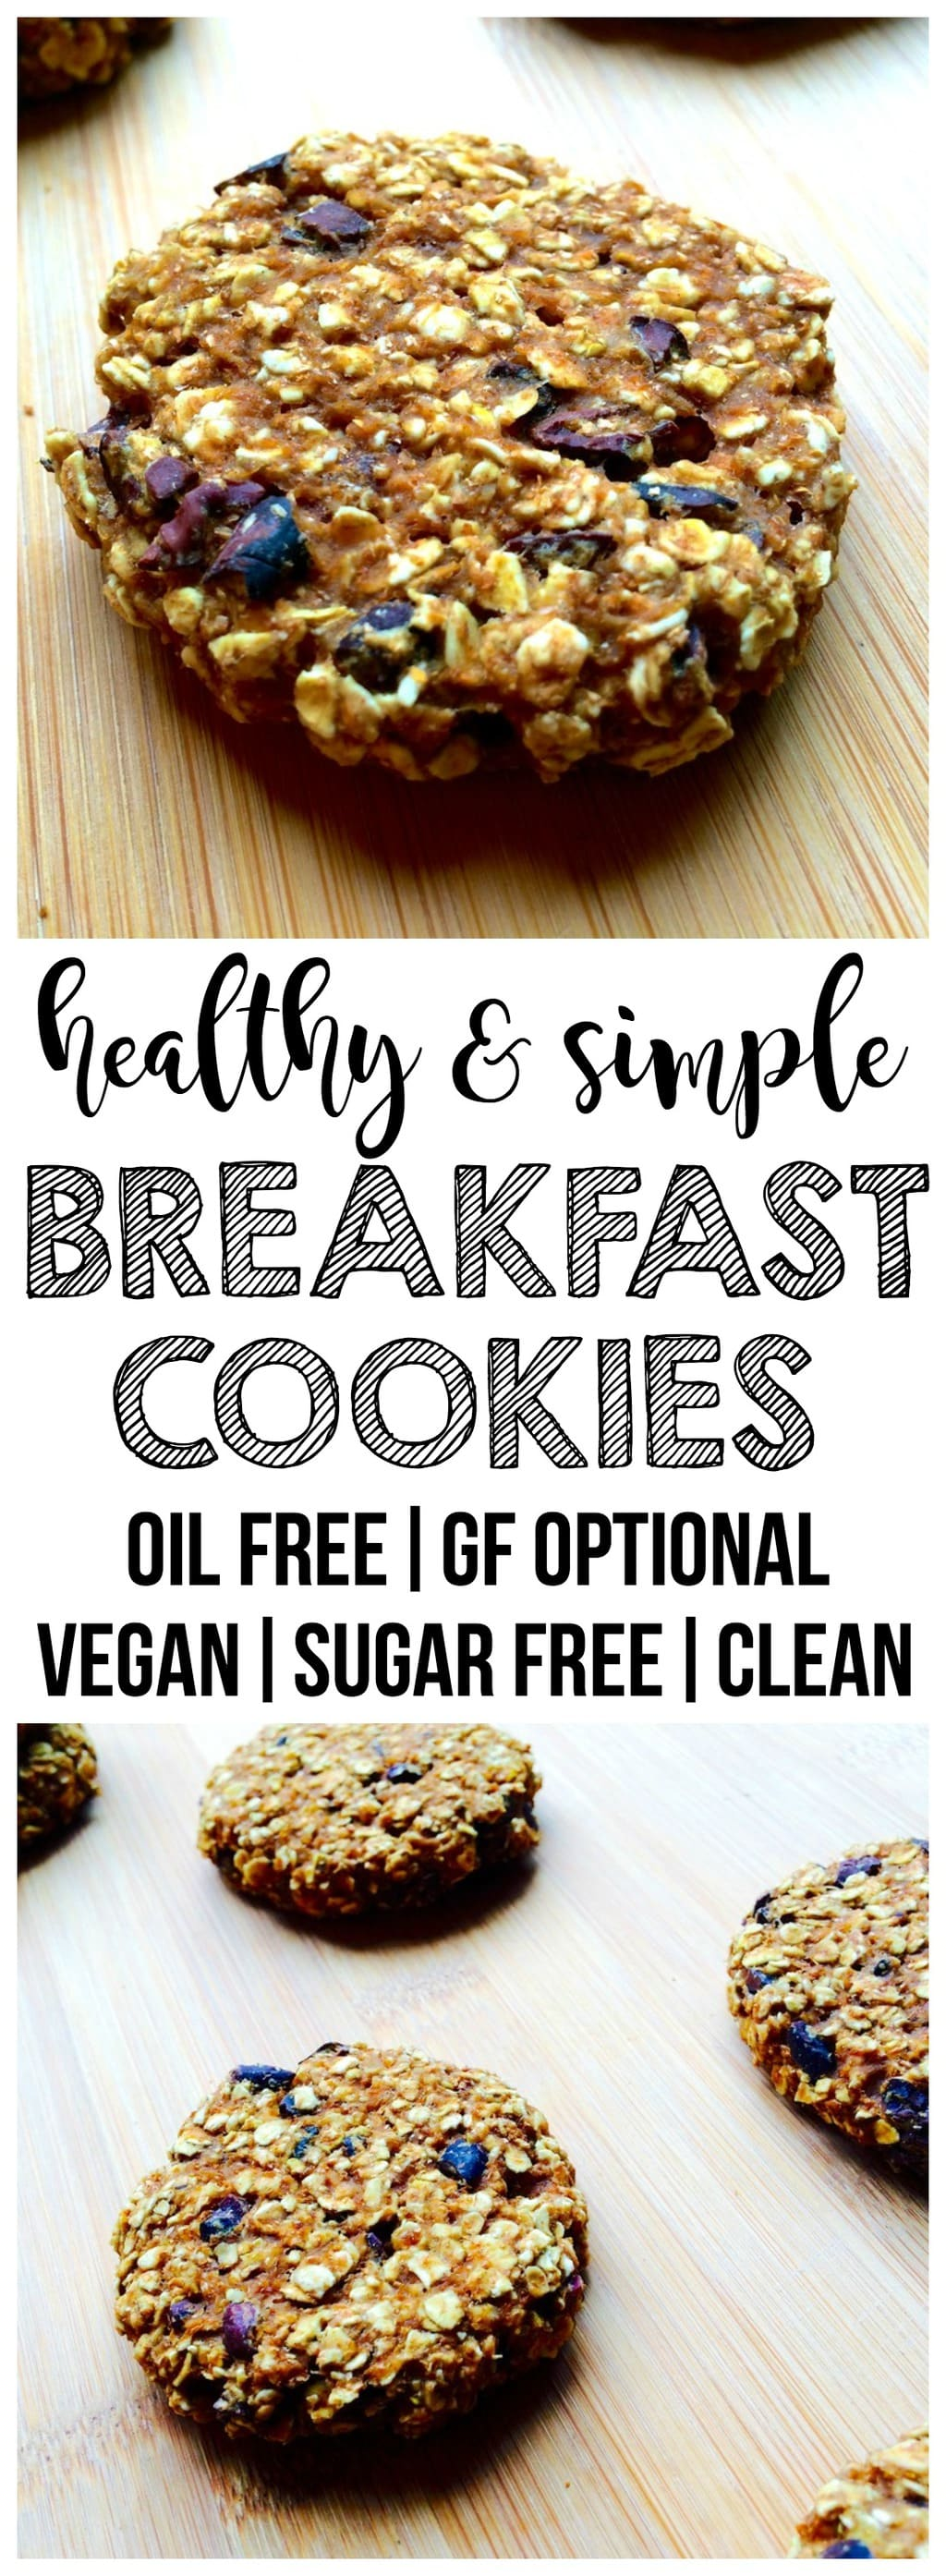 These cookies are so healthy that you can eat them for breakfast!! Made with delicious, wholesome ingredients and packed with fiber to keep you full all morning long. Vegan, sugar-free, low-carb, low-fat, dairy-free & oil-free, with a gluten-free option. Ready in 15 minutes!